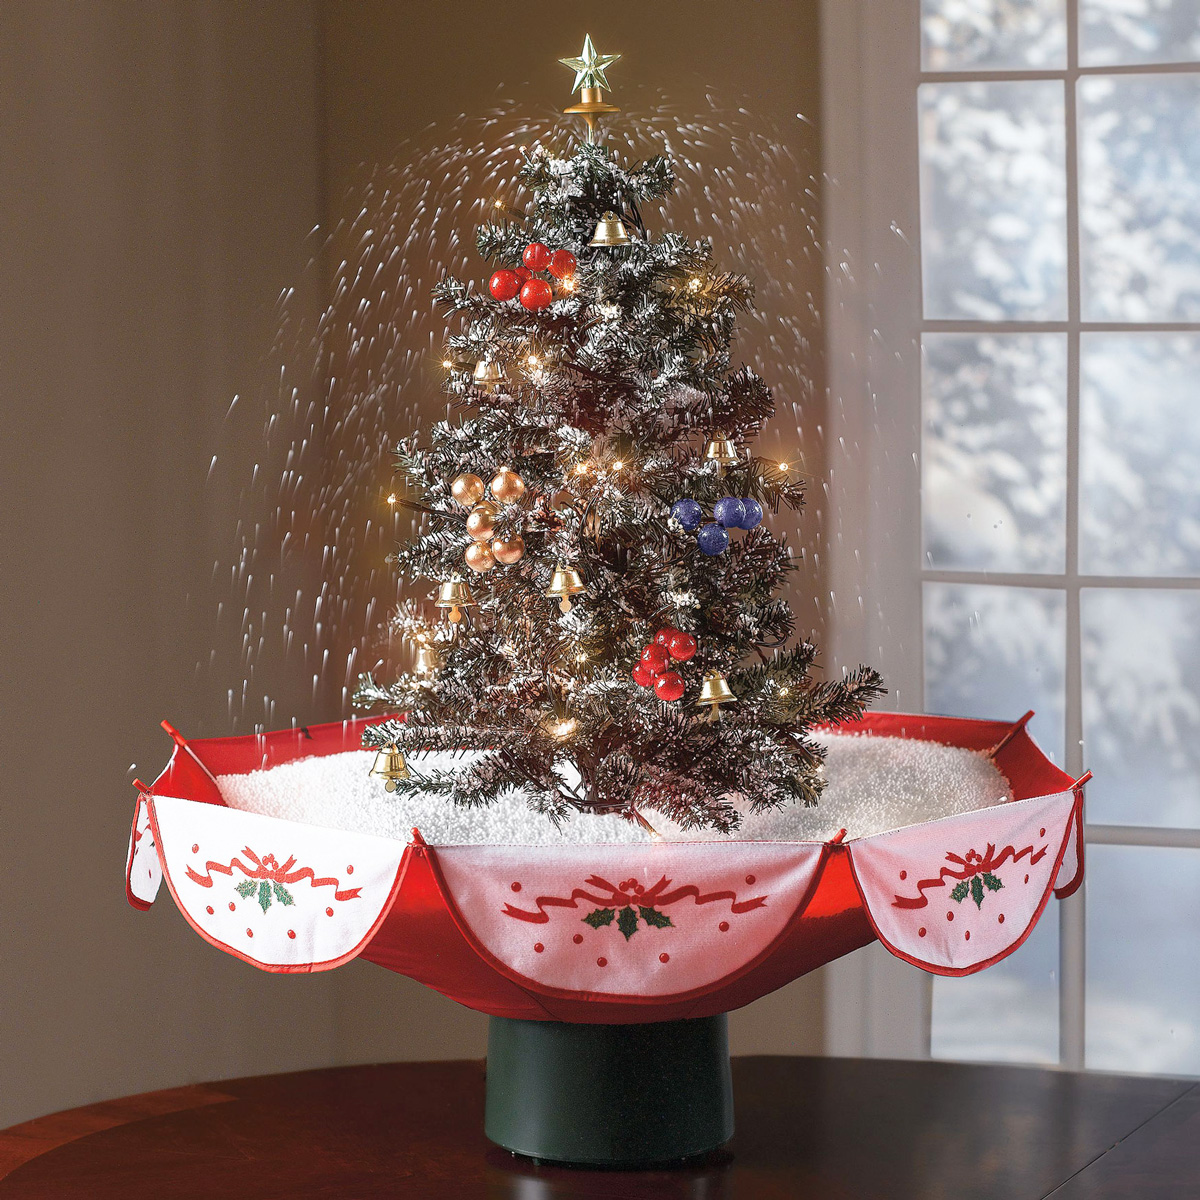 Kleine Kerstboom Met Verlichting Tabletop Snowing Christmas Tree The Green Head